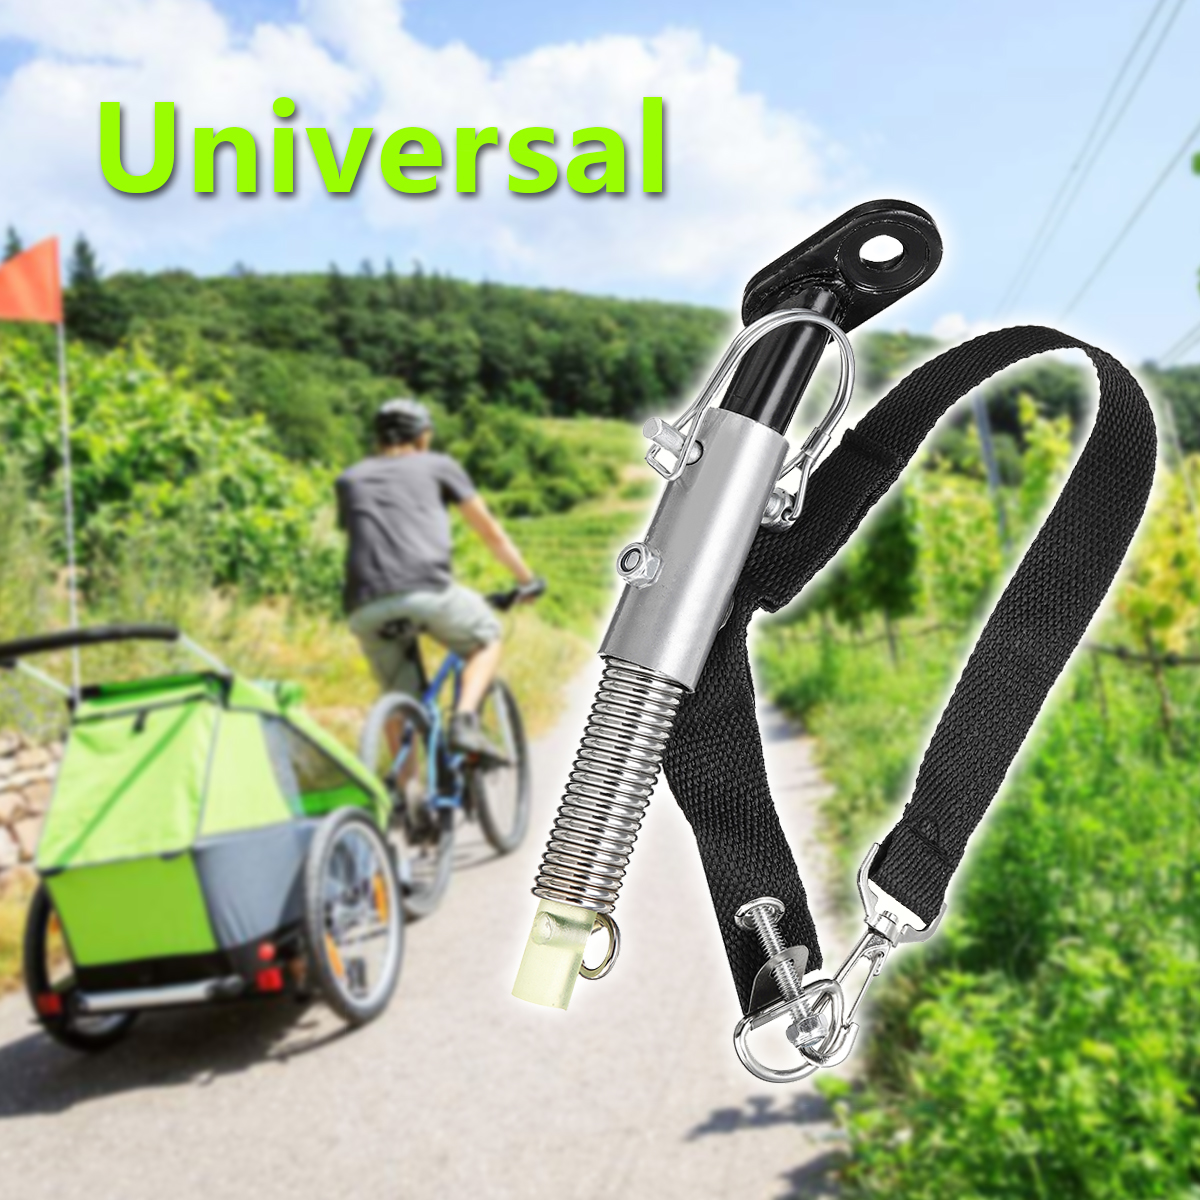 Bike Trailer Hitch Quick Release Steel Linker  Adapter for Bike Truck Bicycle